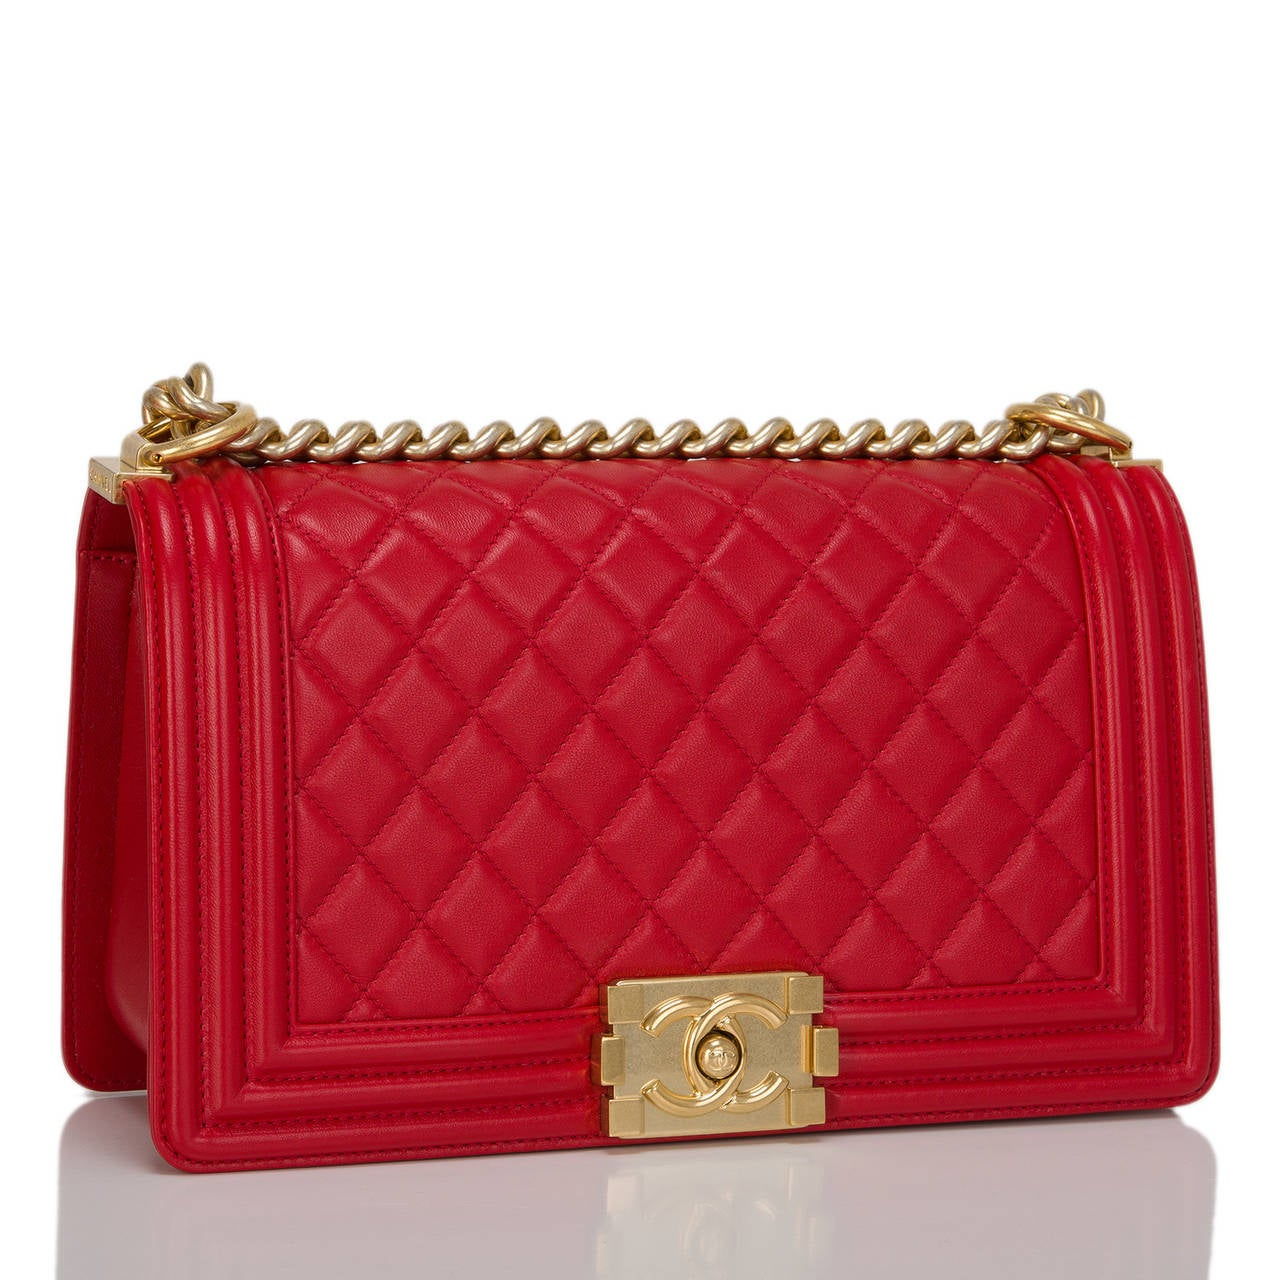 Chanel red quilted lambskin Medium Boy Bag with aged gold tone hardware. This bag features a full front flap with the Boy Chanel signature CC push lock closure and aged gold tone chain link and red leather padded shoulder/crossbody strap.  The